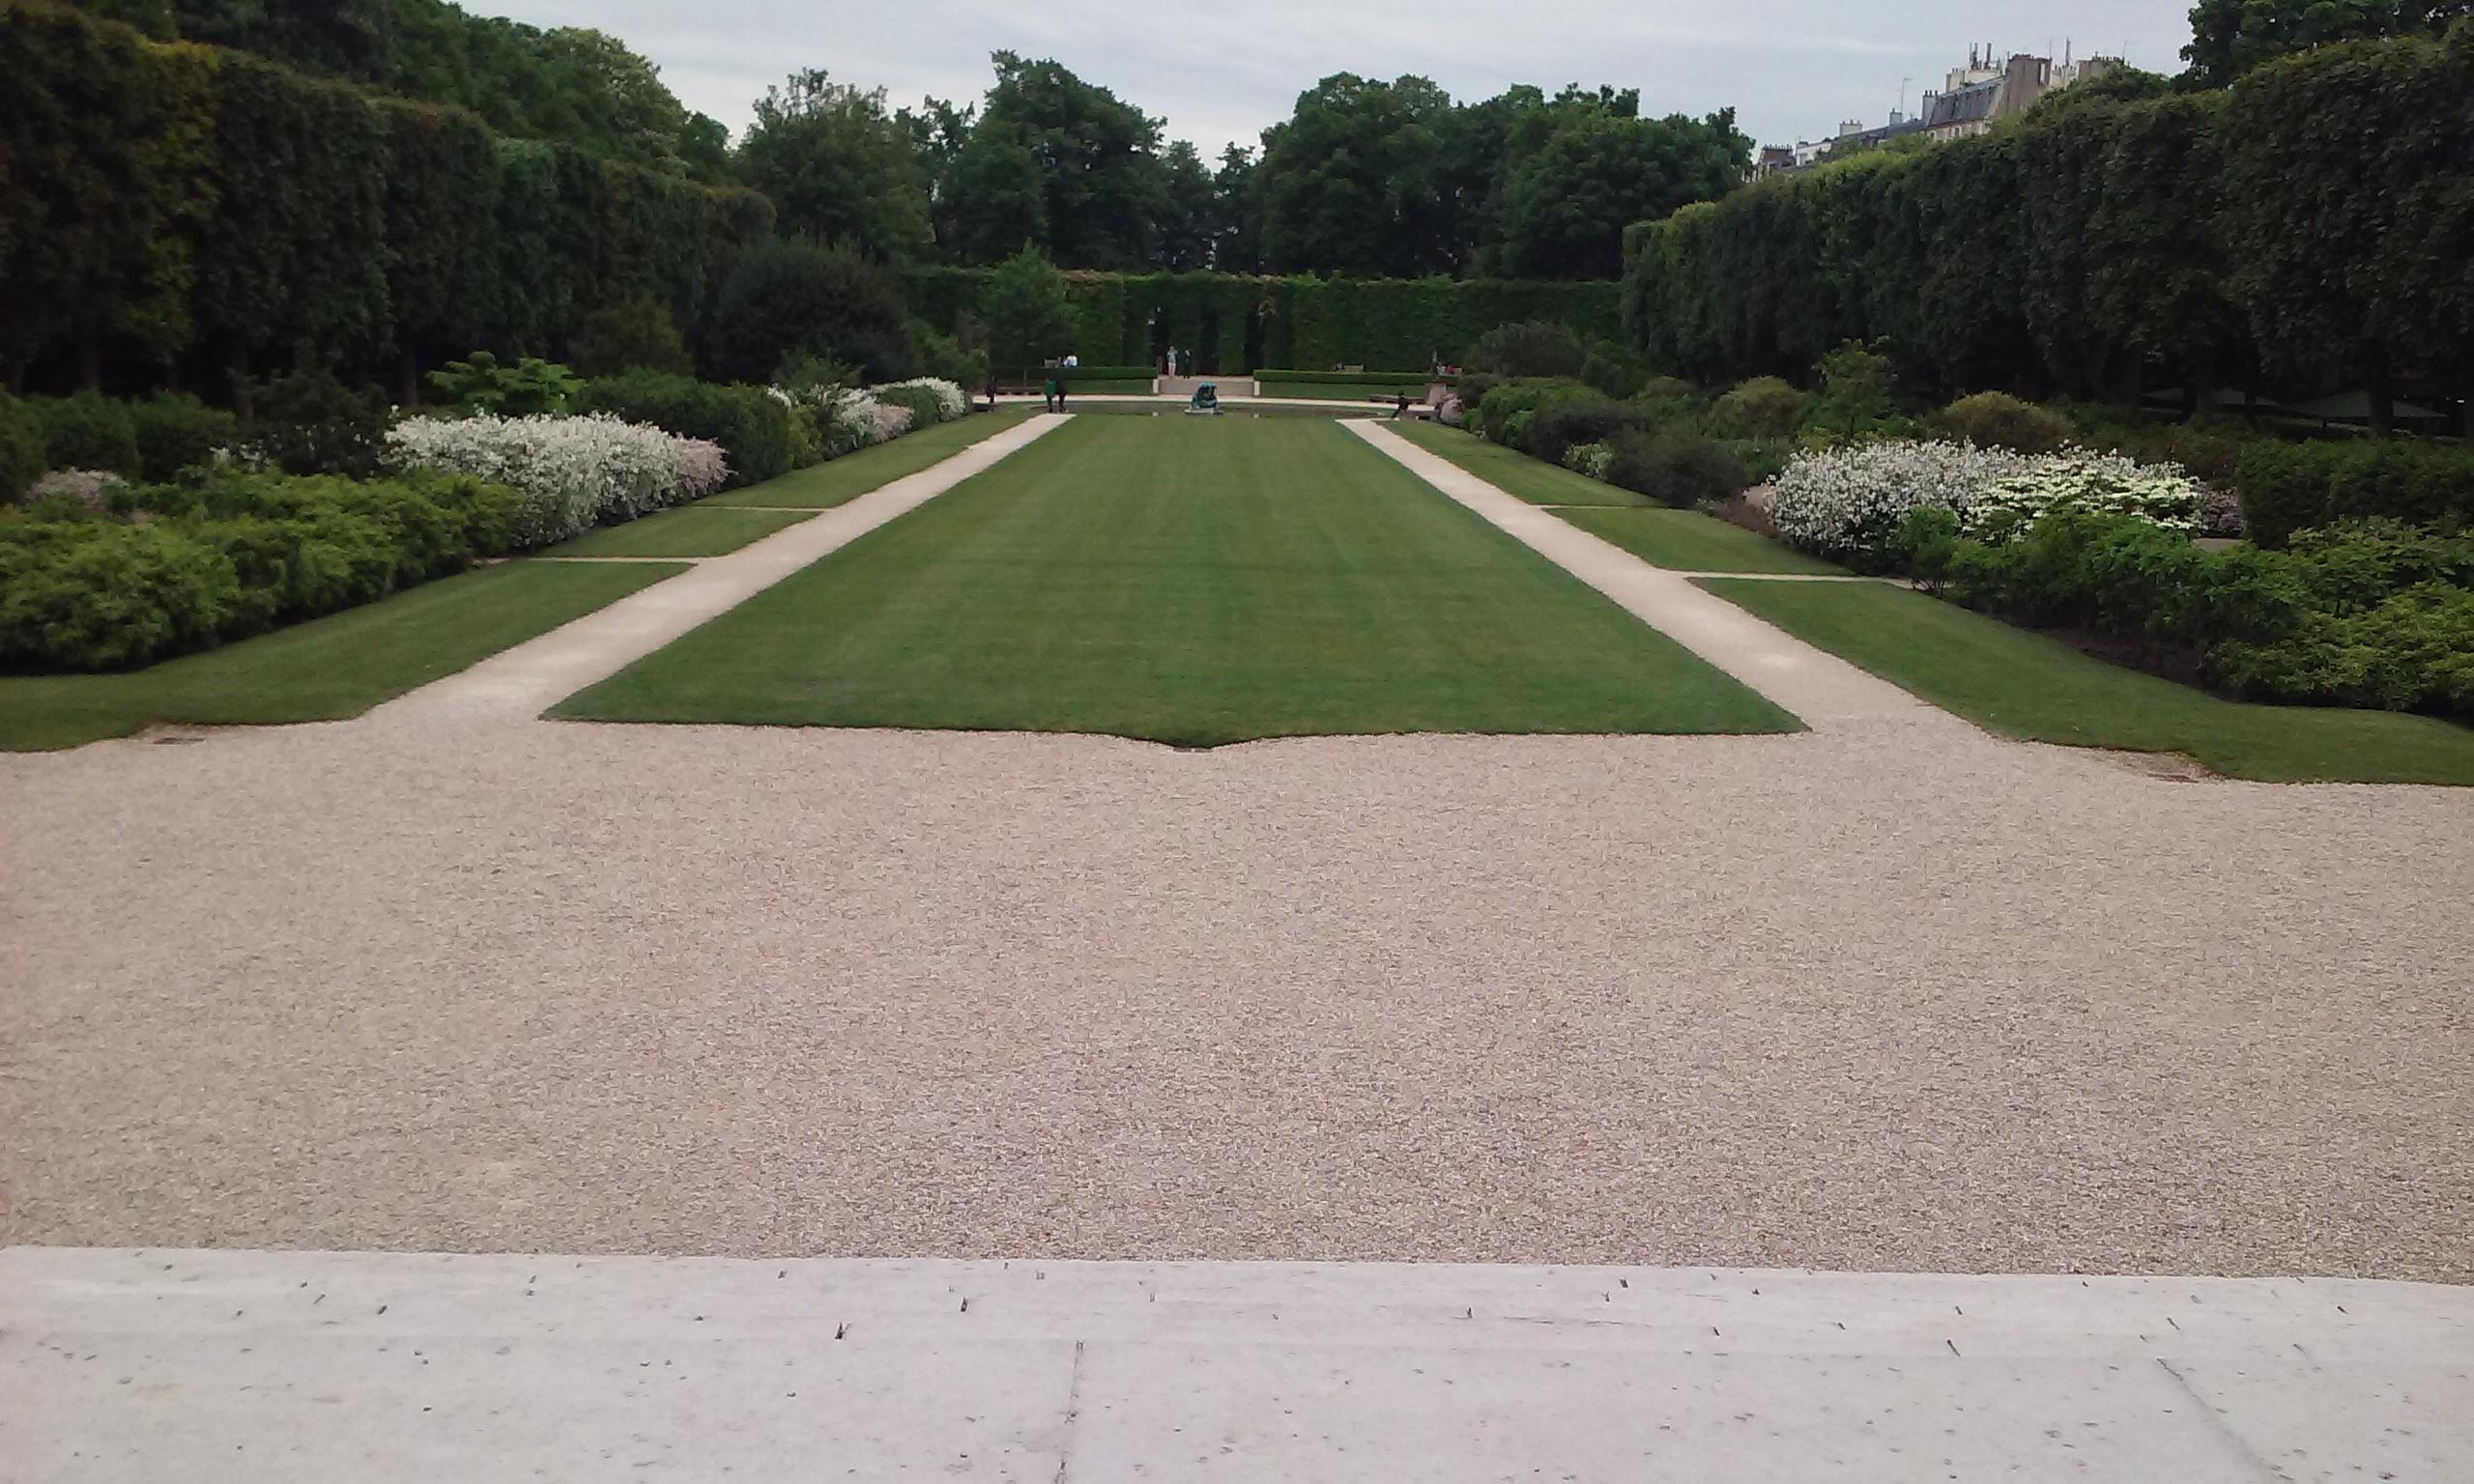 The Central garden at the Musee Rodin. There are a few statues at the end of the walkway a